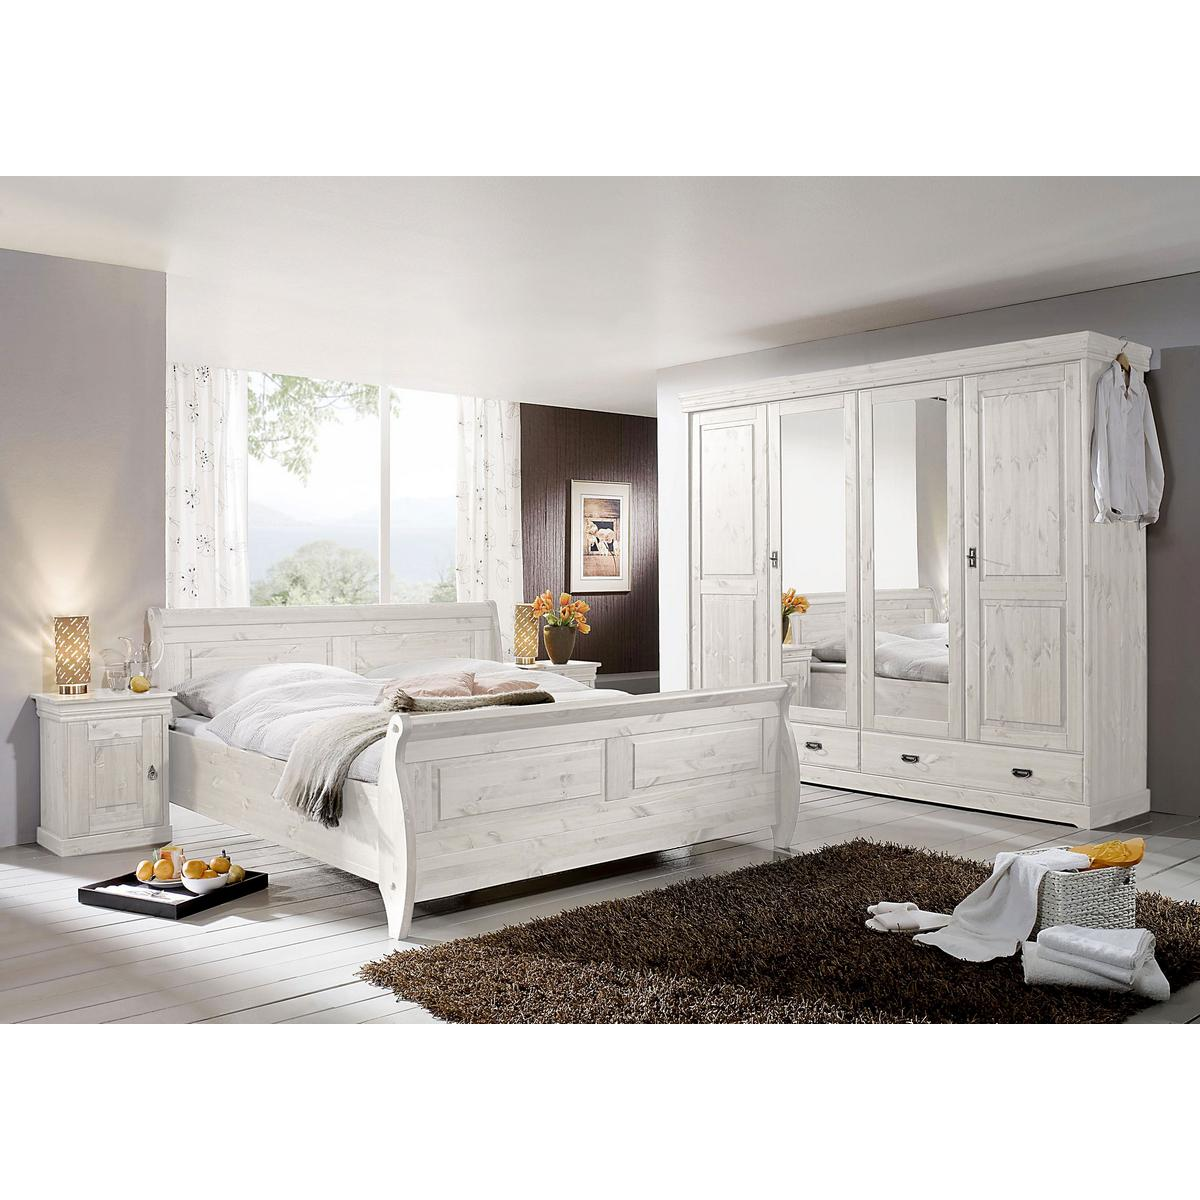 kommoden schlafzimmer gunstig carprola for. Black Bedroom Furniture Sets. Home Design Ideas